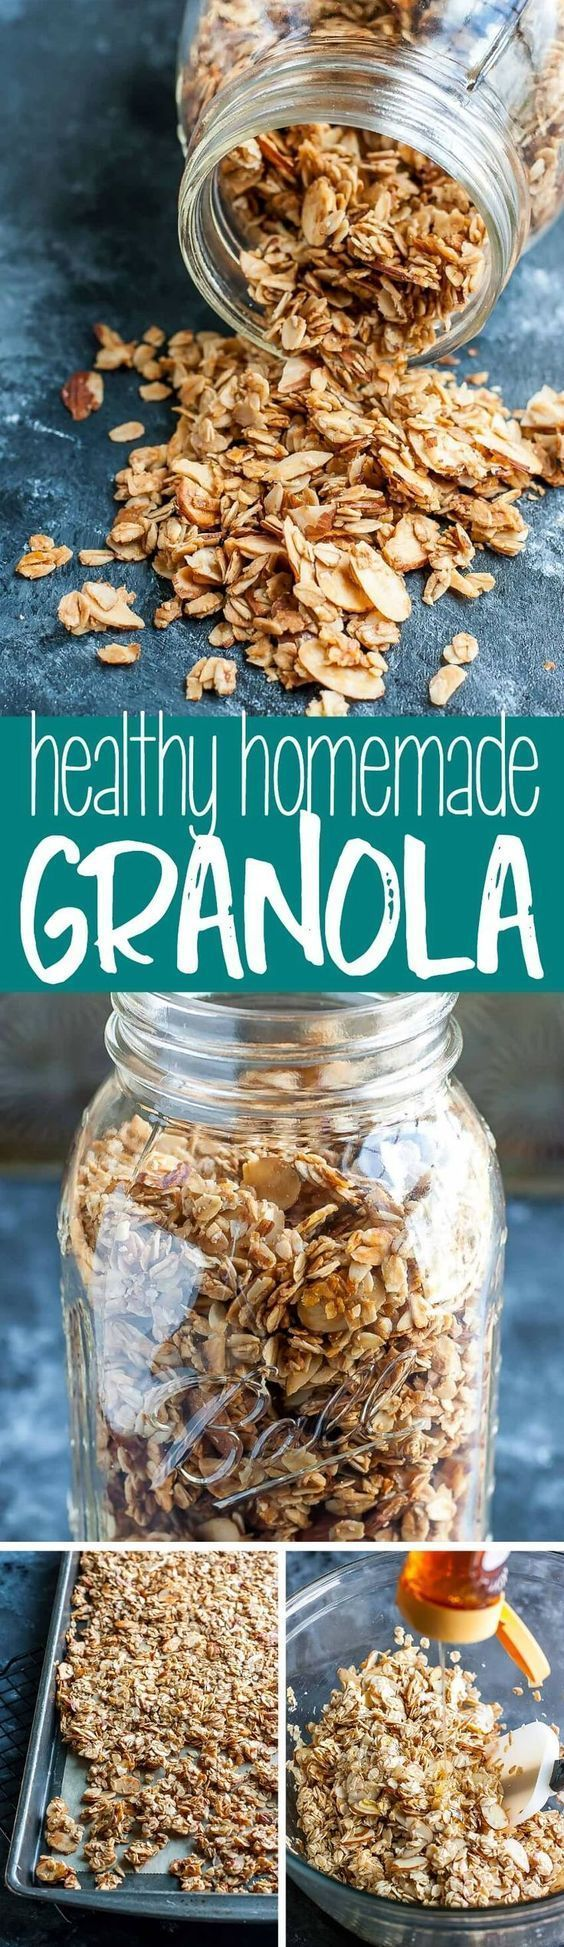 Skip the store-bought granola and whip some up at home using ingredients already in your pantry! This healthy homemade granola recipe is quick to prep, super easy, and sweetened naturally!